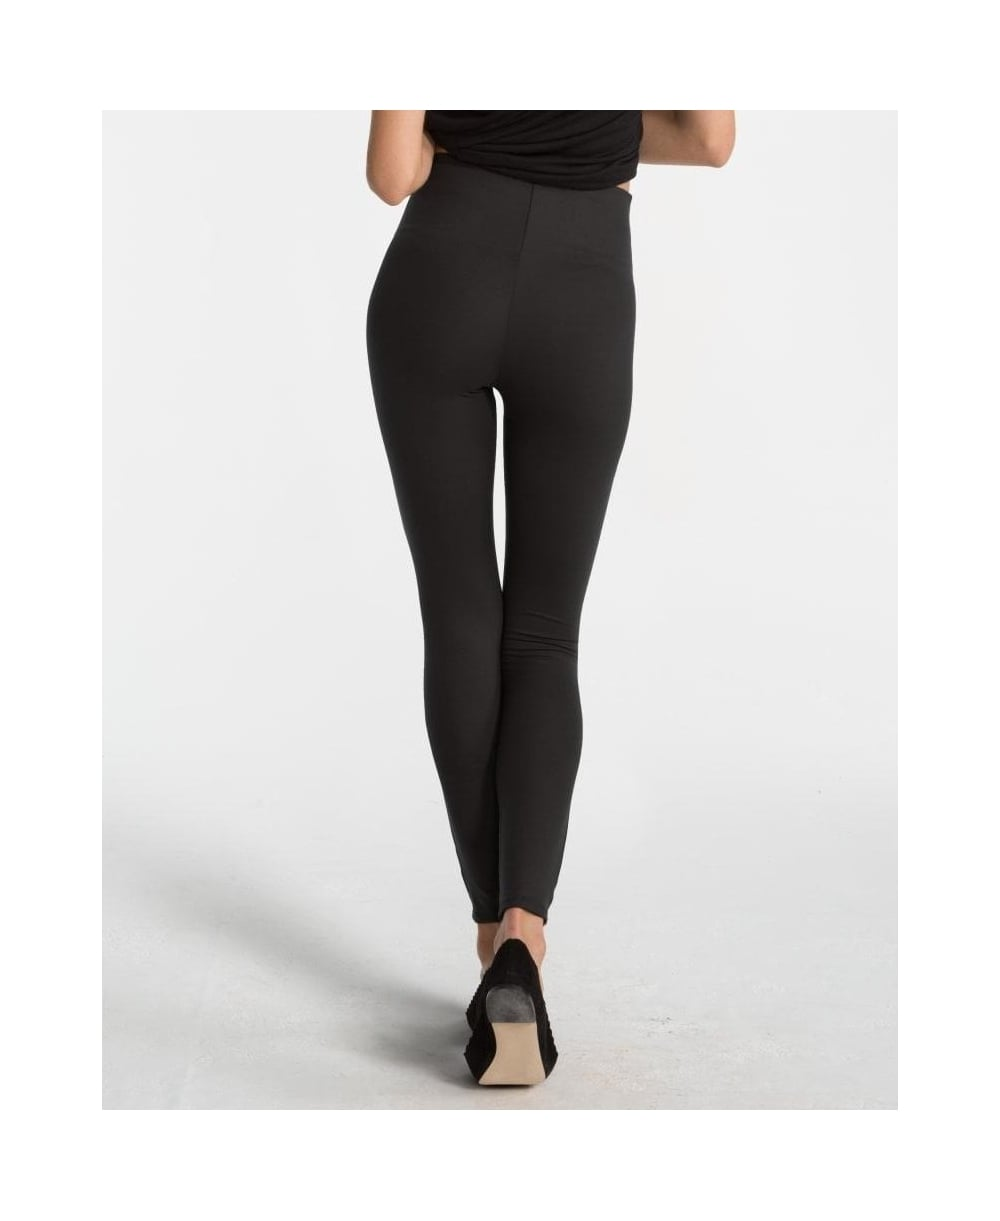 9b9ff7dde630a Spanx Essential Leggings - Leggings from luxury-legs.com UK